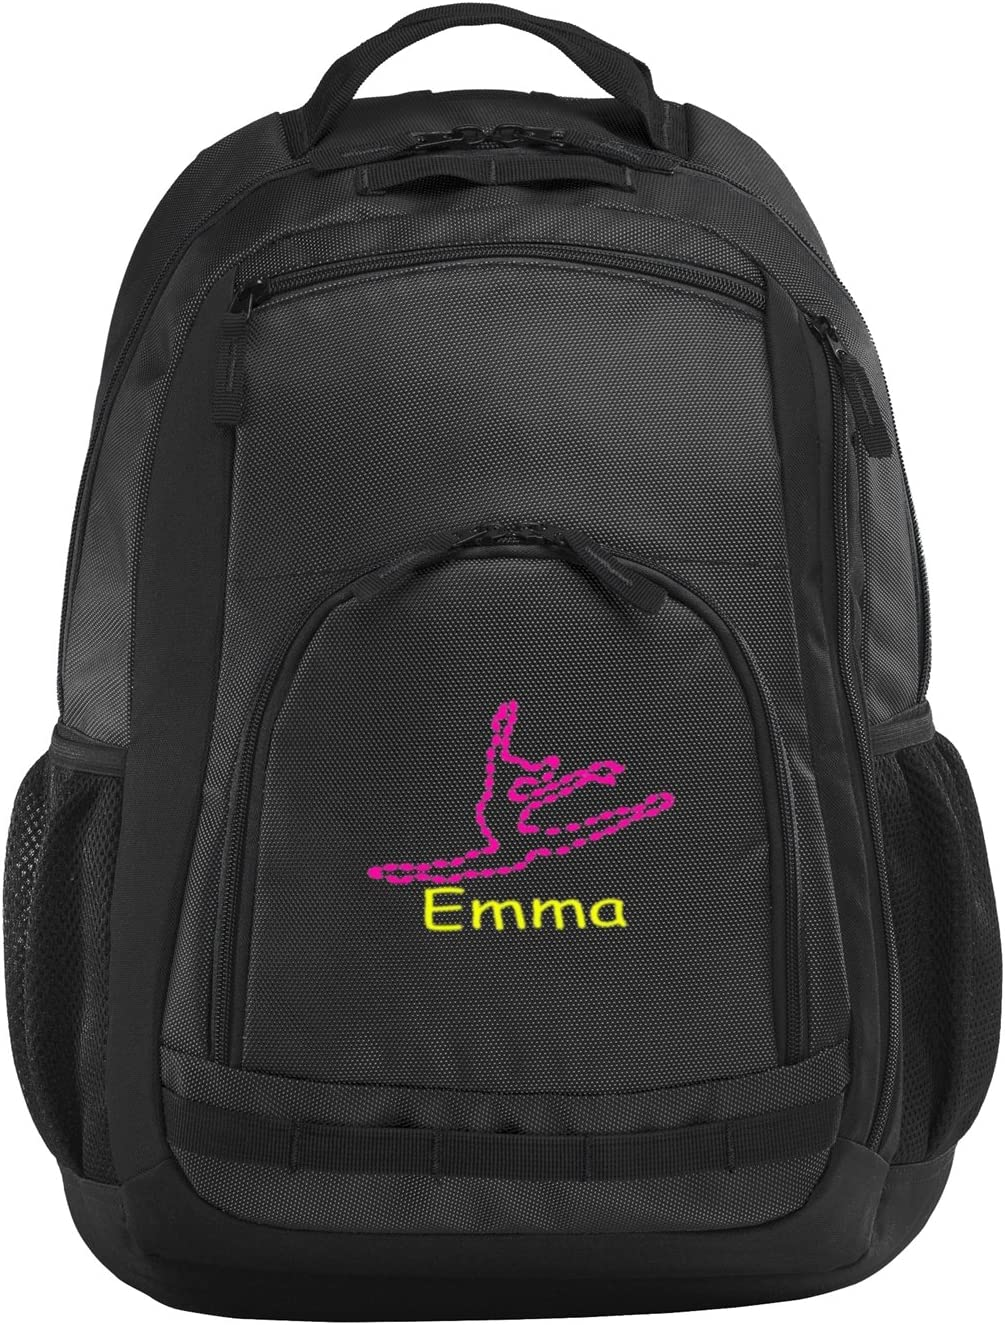 all about me company Polyester Xtreme Backpack Personalized Dance Book Bag Dark Grey//Black//Black